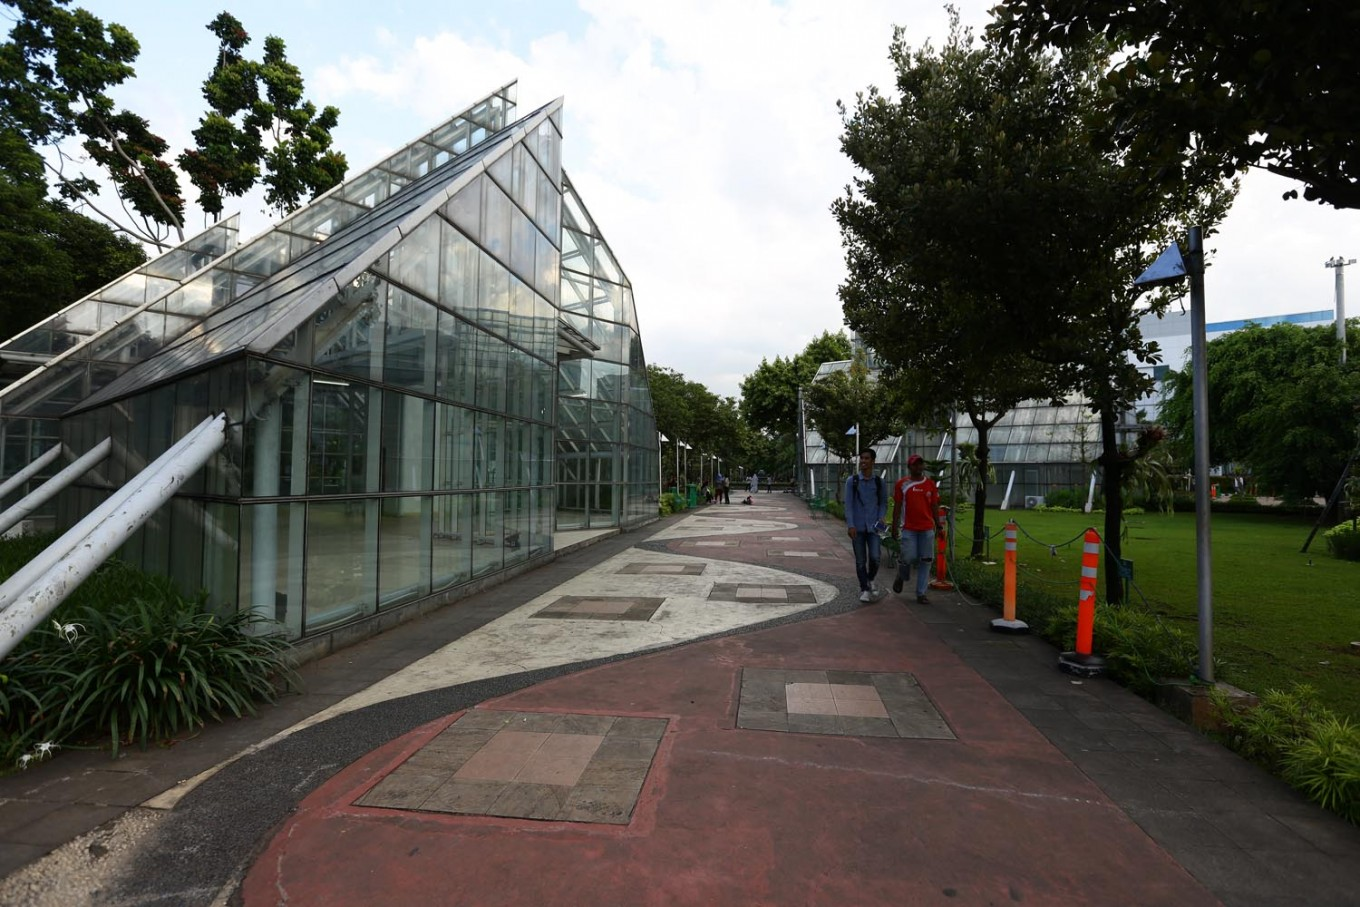 One of the greenhouses (left) at Taman Menteng.